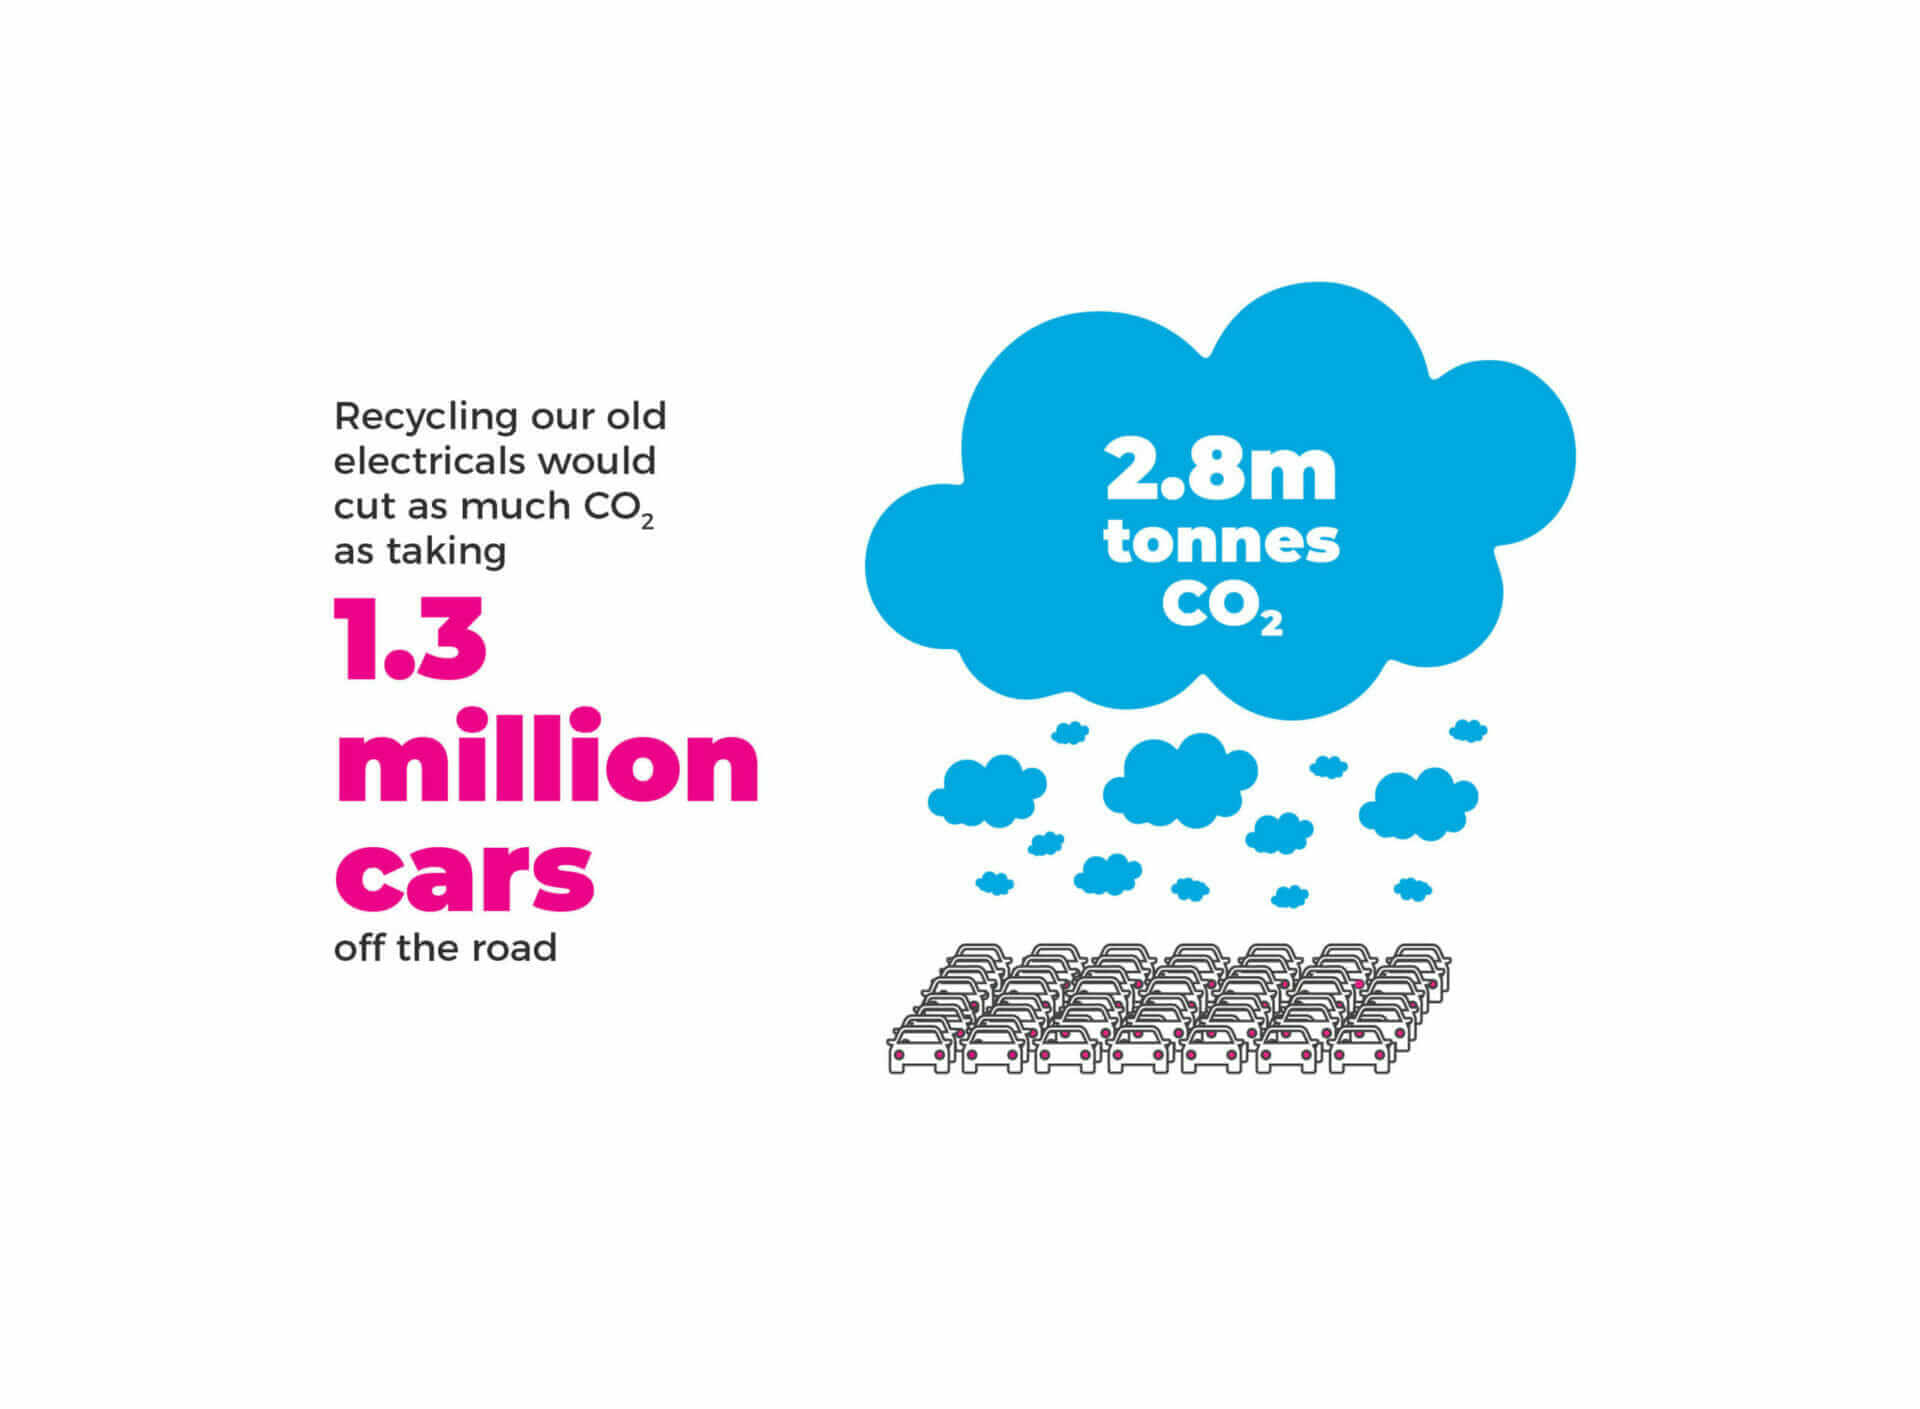 Graphic explaining that recycling electronics in the UK would benefit the environment by reducing carbon emissions